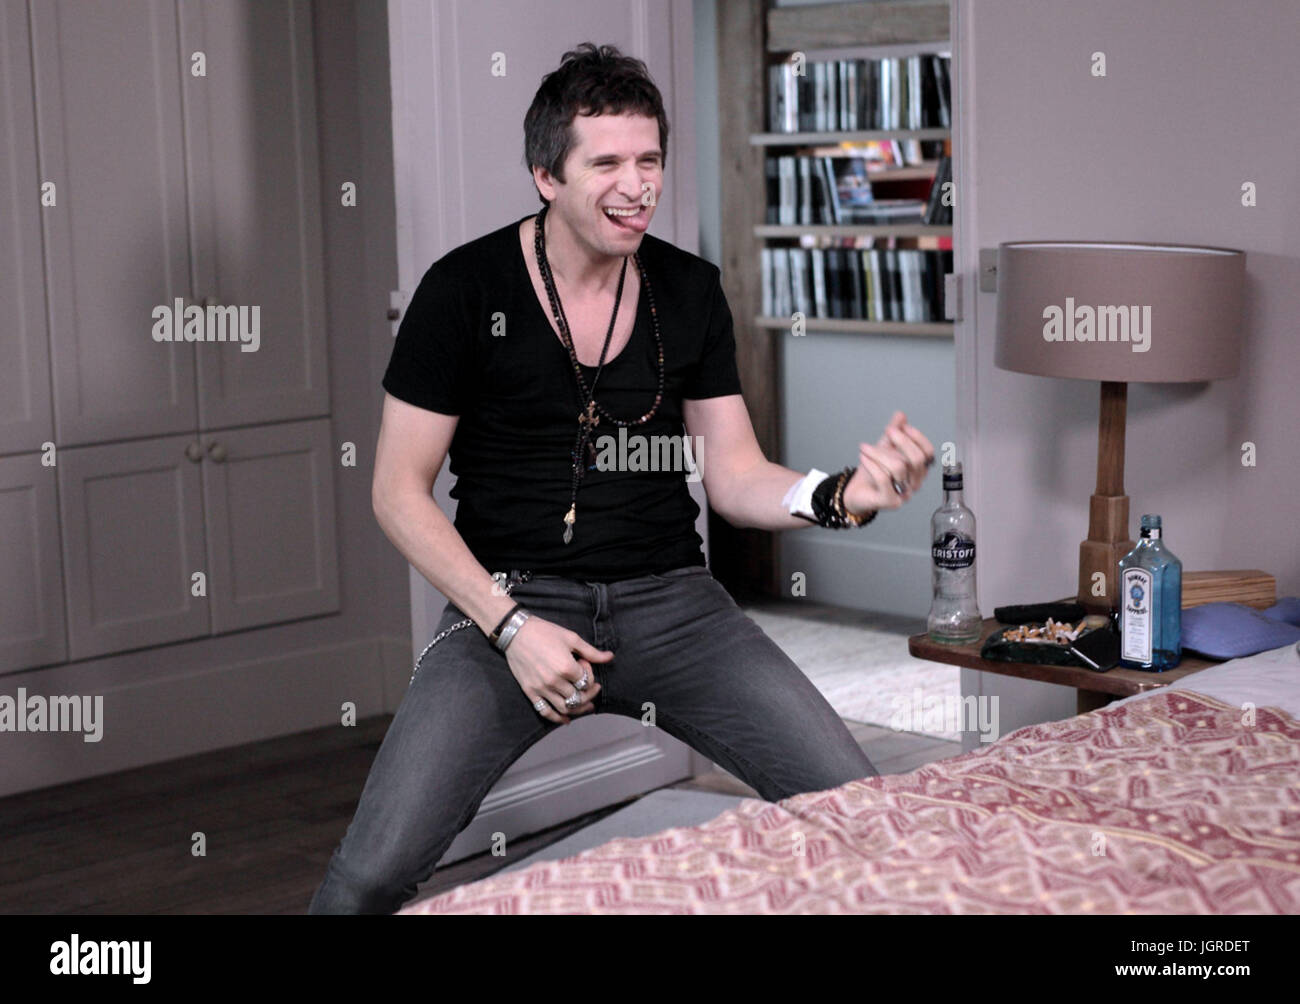 ROCK'N ROLL (2017)  GUILLAUME CANET  GUILLAUME CANET (DIR)  PATHE/MOVIESTORE COLLECTION LTD - Stock Image